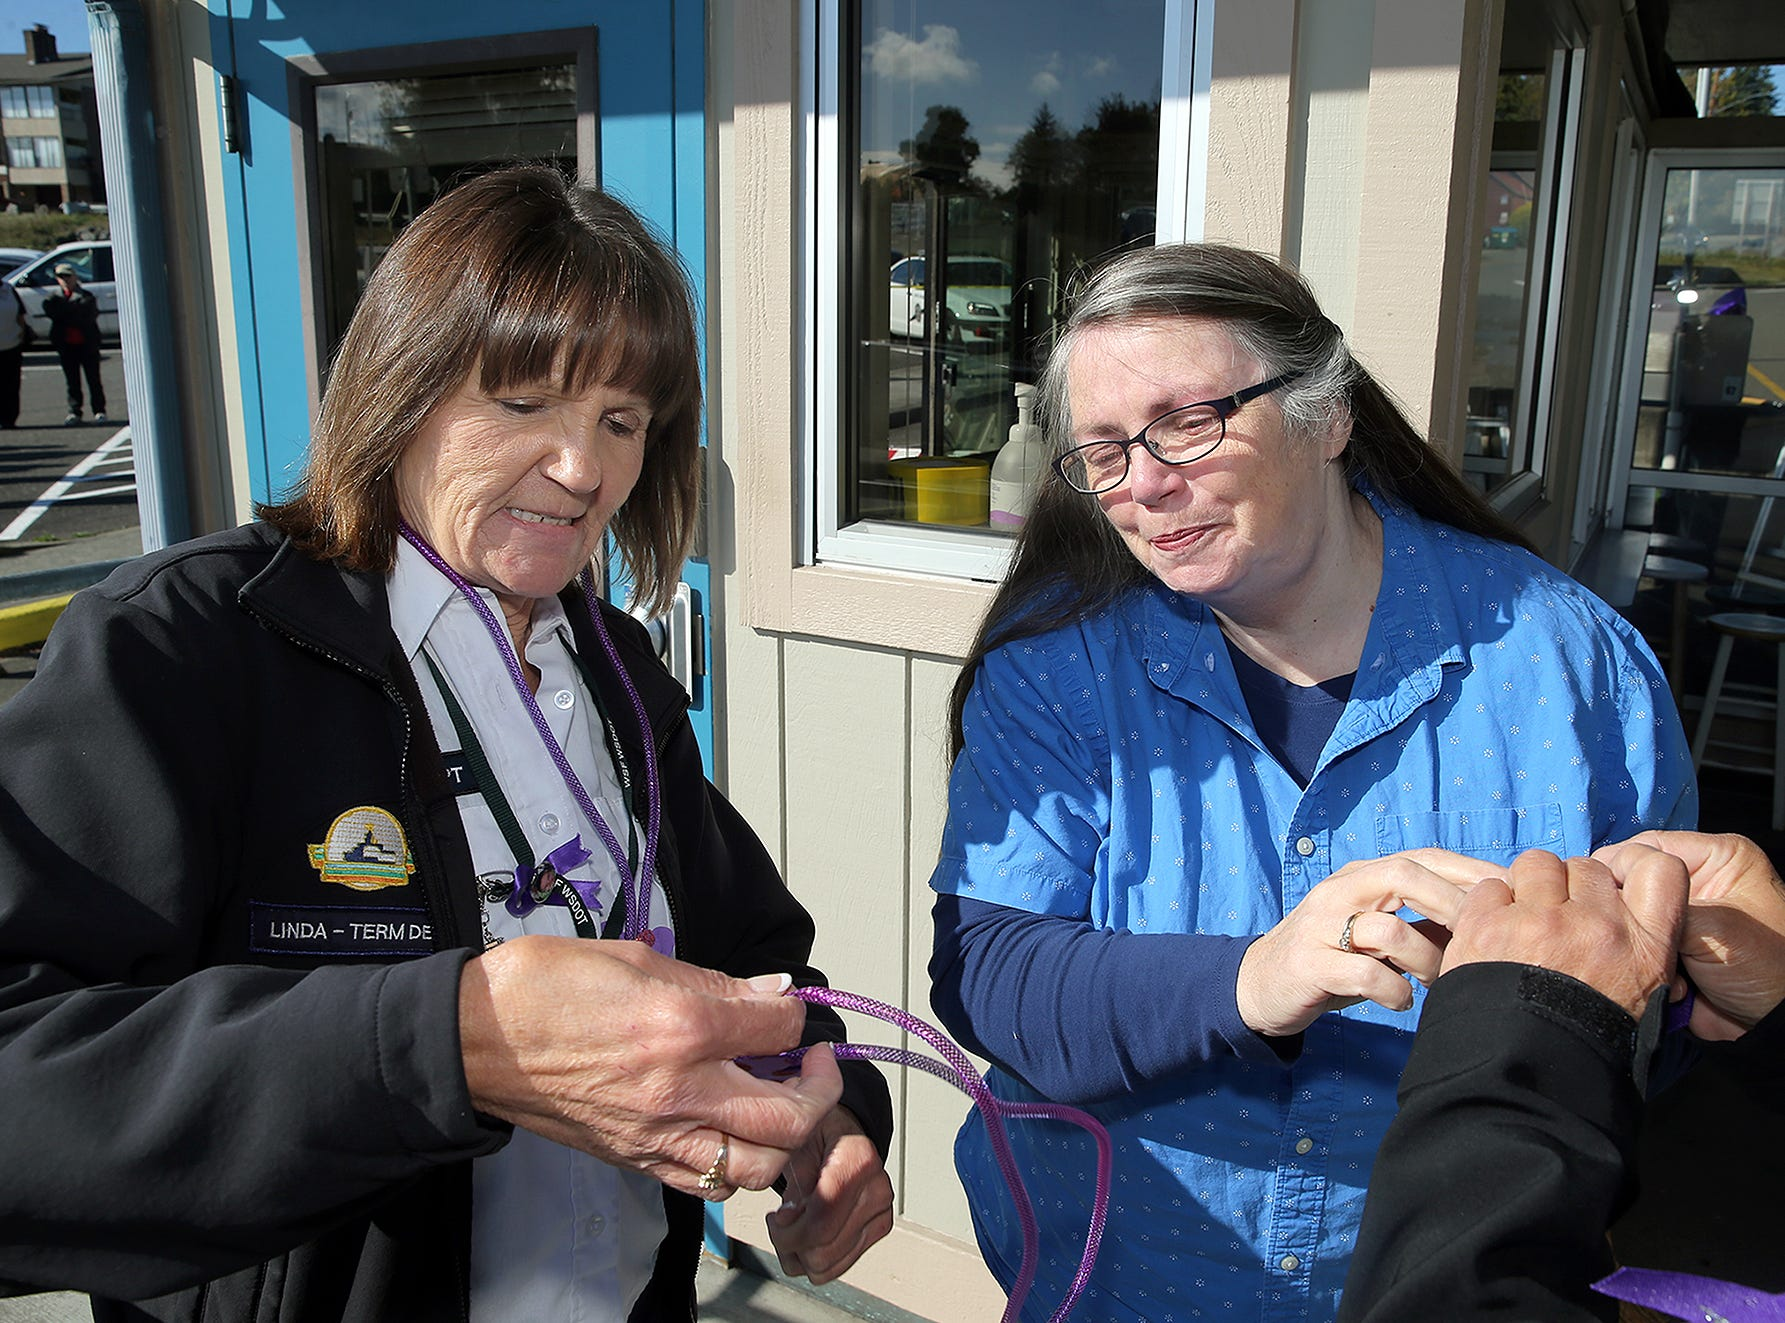 Deborah Harrah of Bremerton the mother of former Washington State Ferries employe Katie Phillips is given a purple necklace from her daughter's co-worker Linda Lindsley at the Southworth Ferry Terminal Thursday, October 4, 2018. Phillips passed away at a tragic accident on Highway 160 near Long Lake in Port Orchard. Southworth ferry workers and friends held a small memorial for Phillips outside the toll booths. Purple was Phillips favorite color.